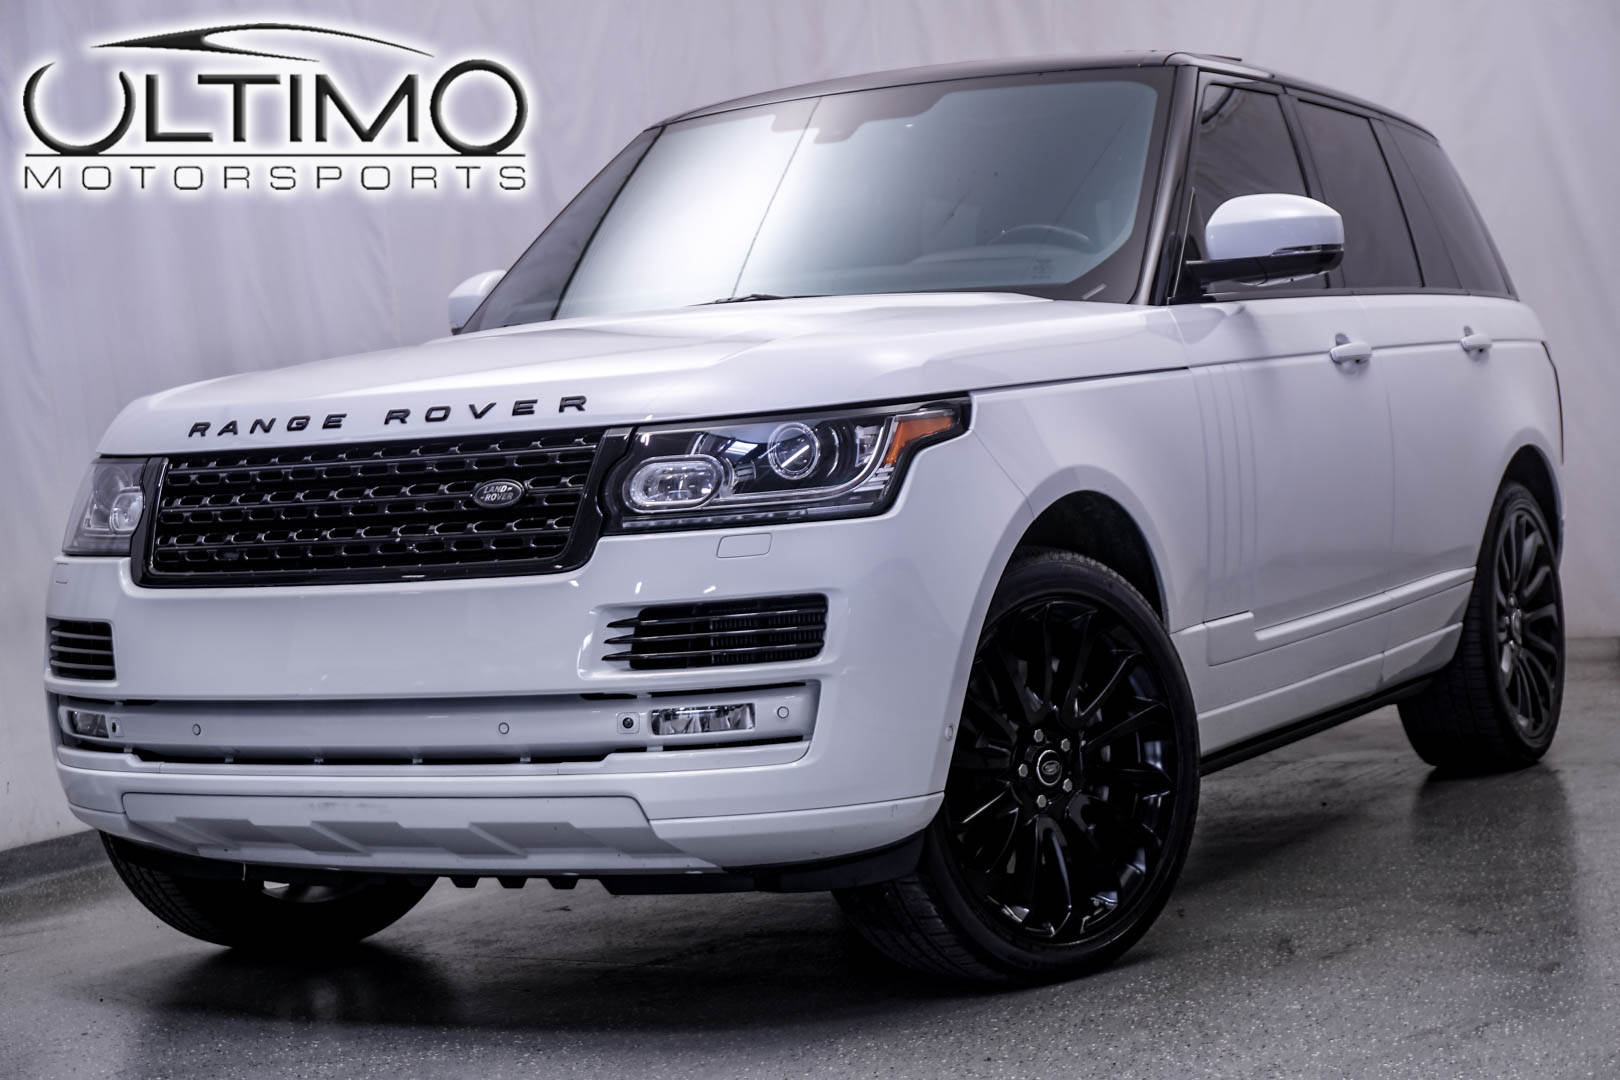 mall hse at land drive rover cars supercharged sport auto navigation range landrover wheel saugus used all